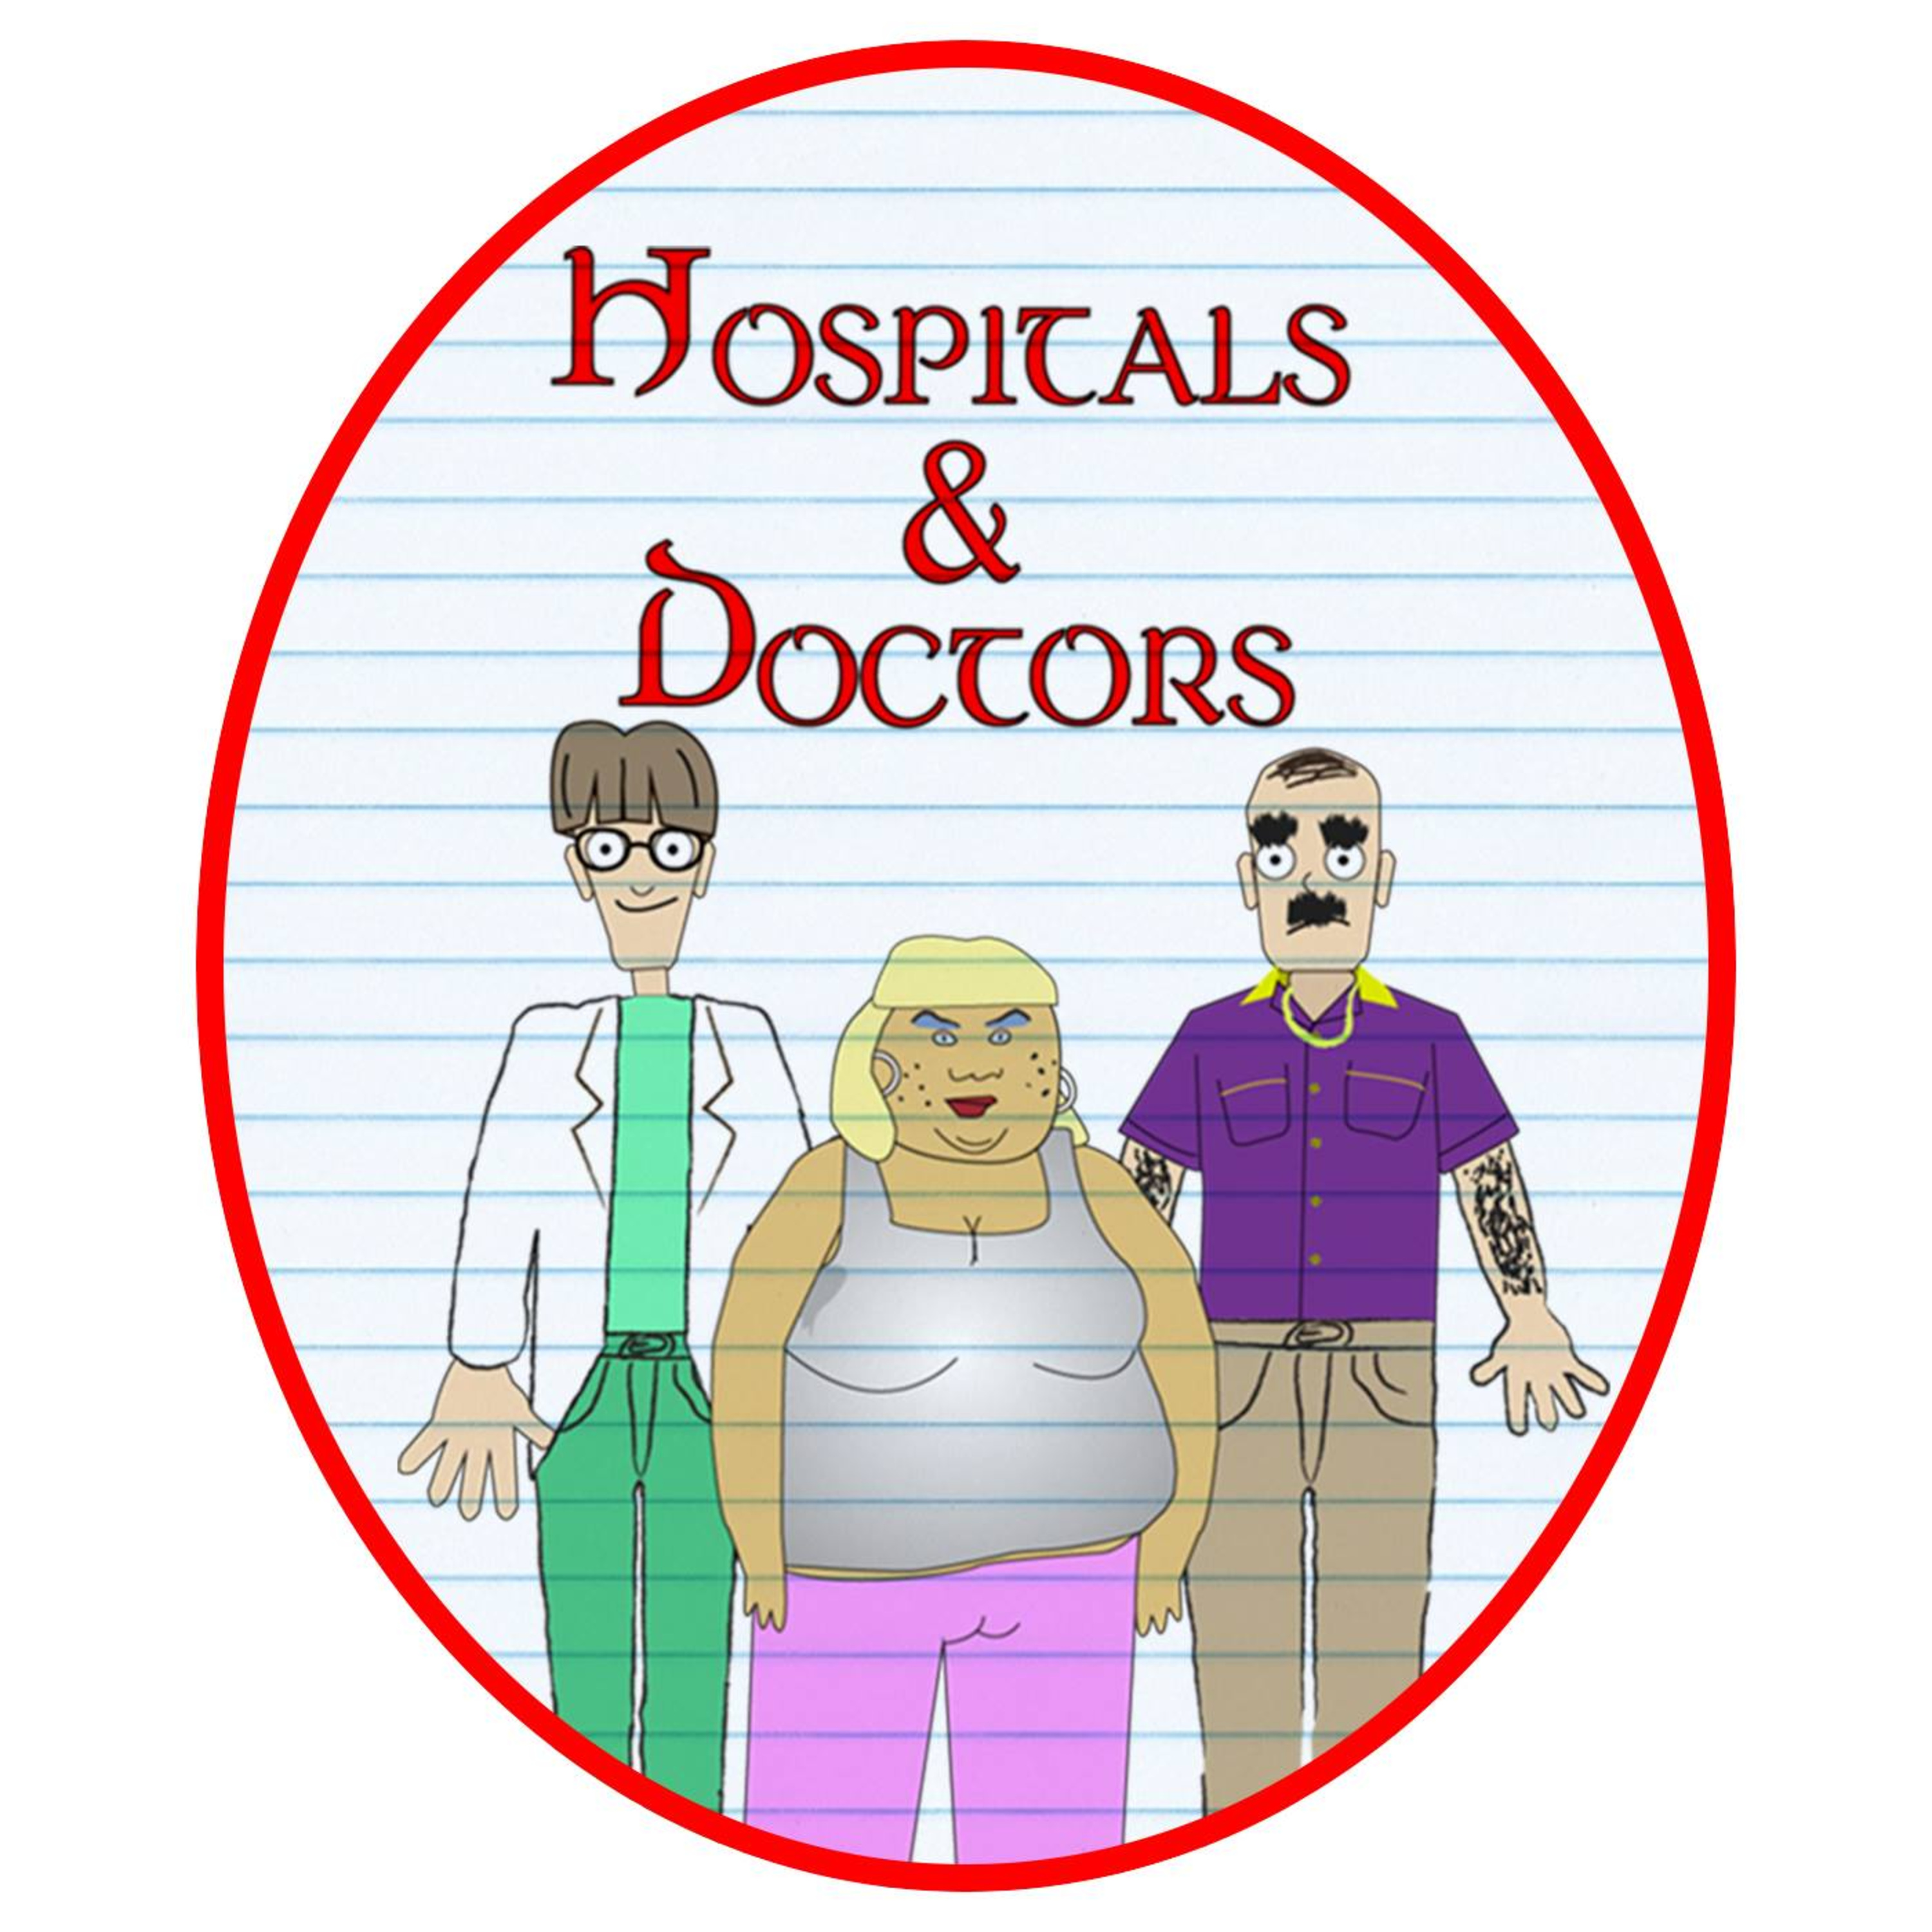 Hospitals & Doctors - The Bag of Holding